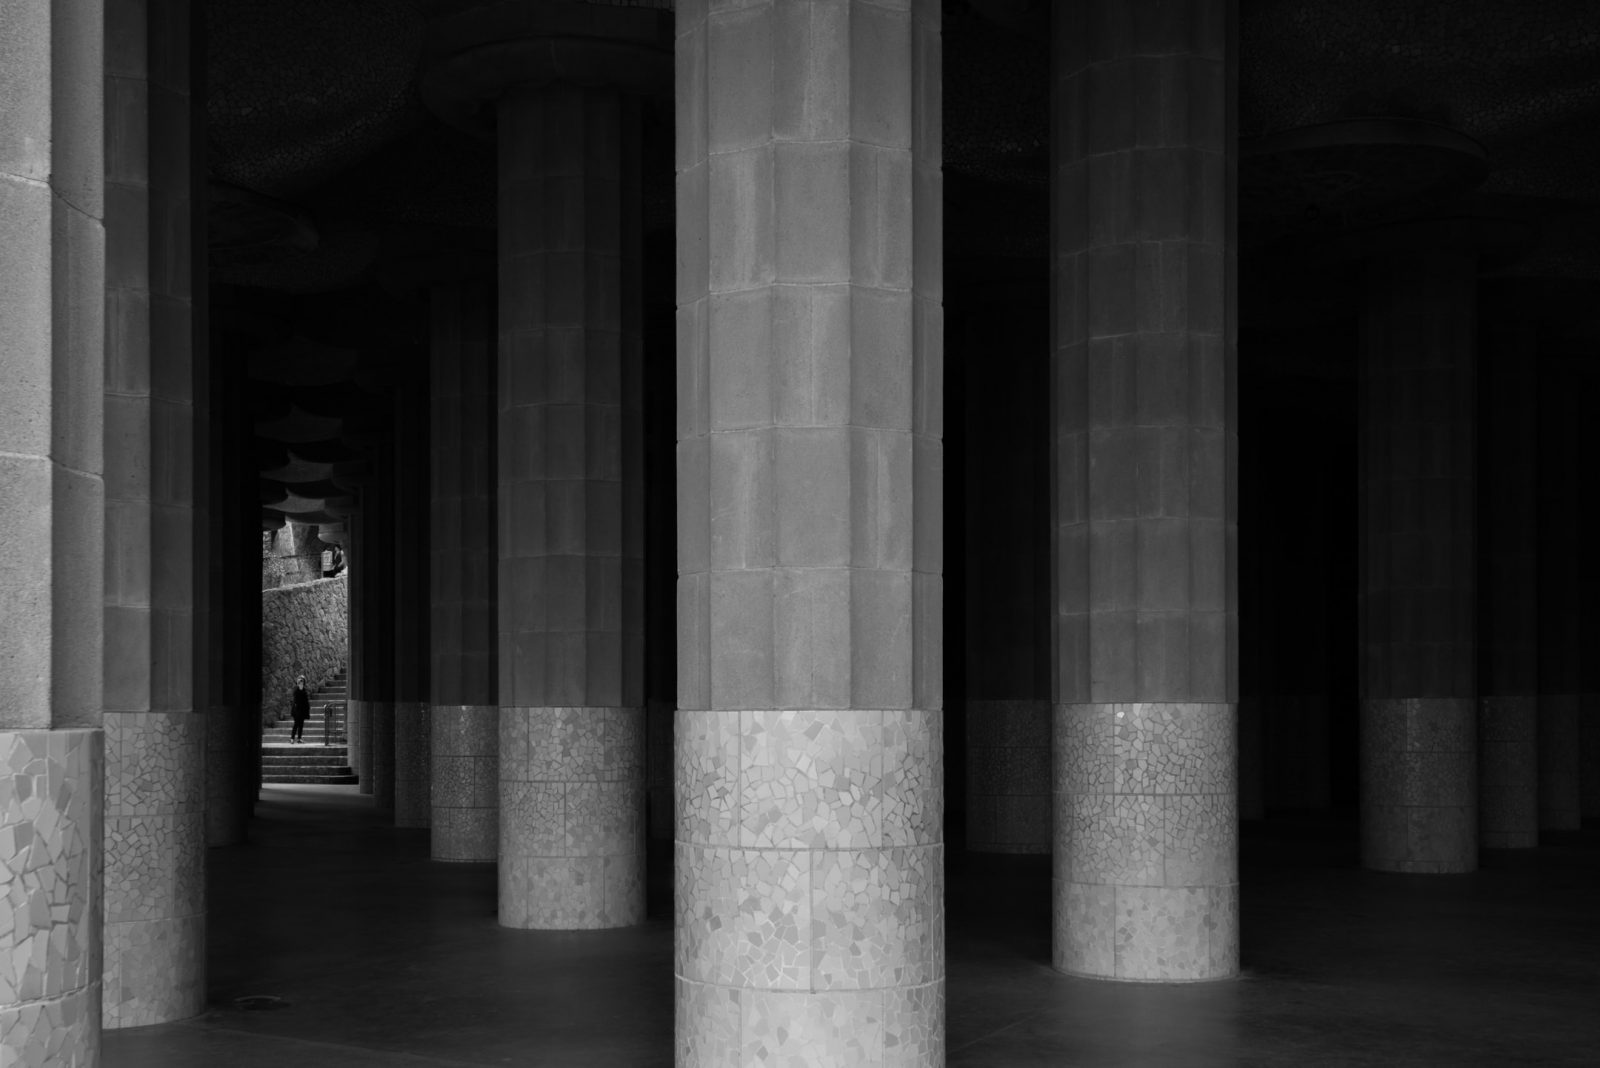 A black and white photo of big pillars.